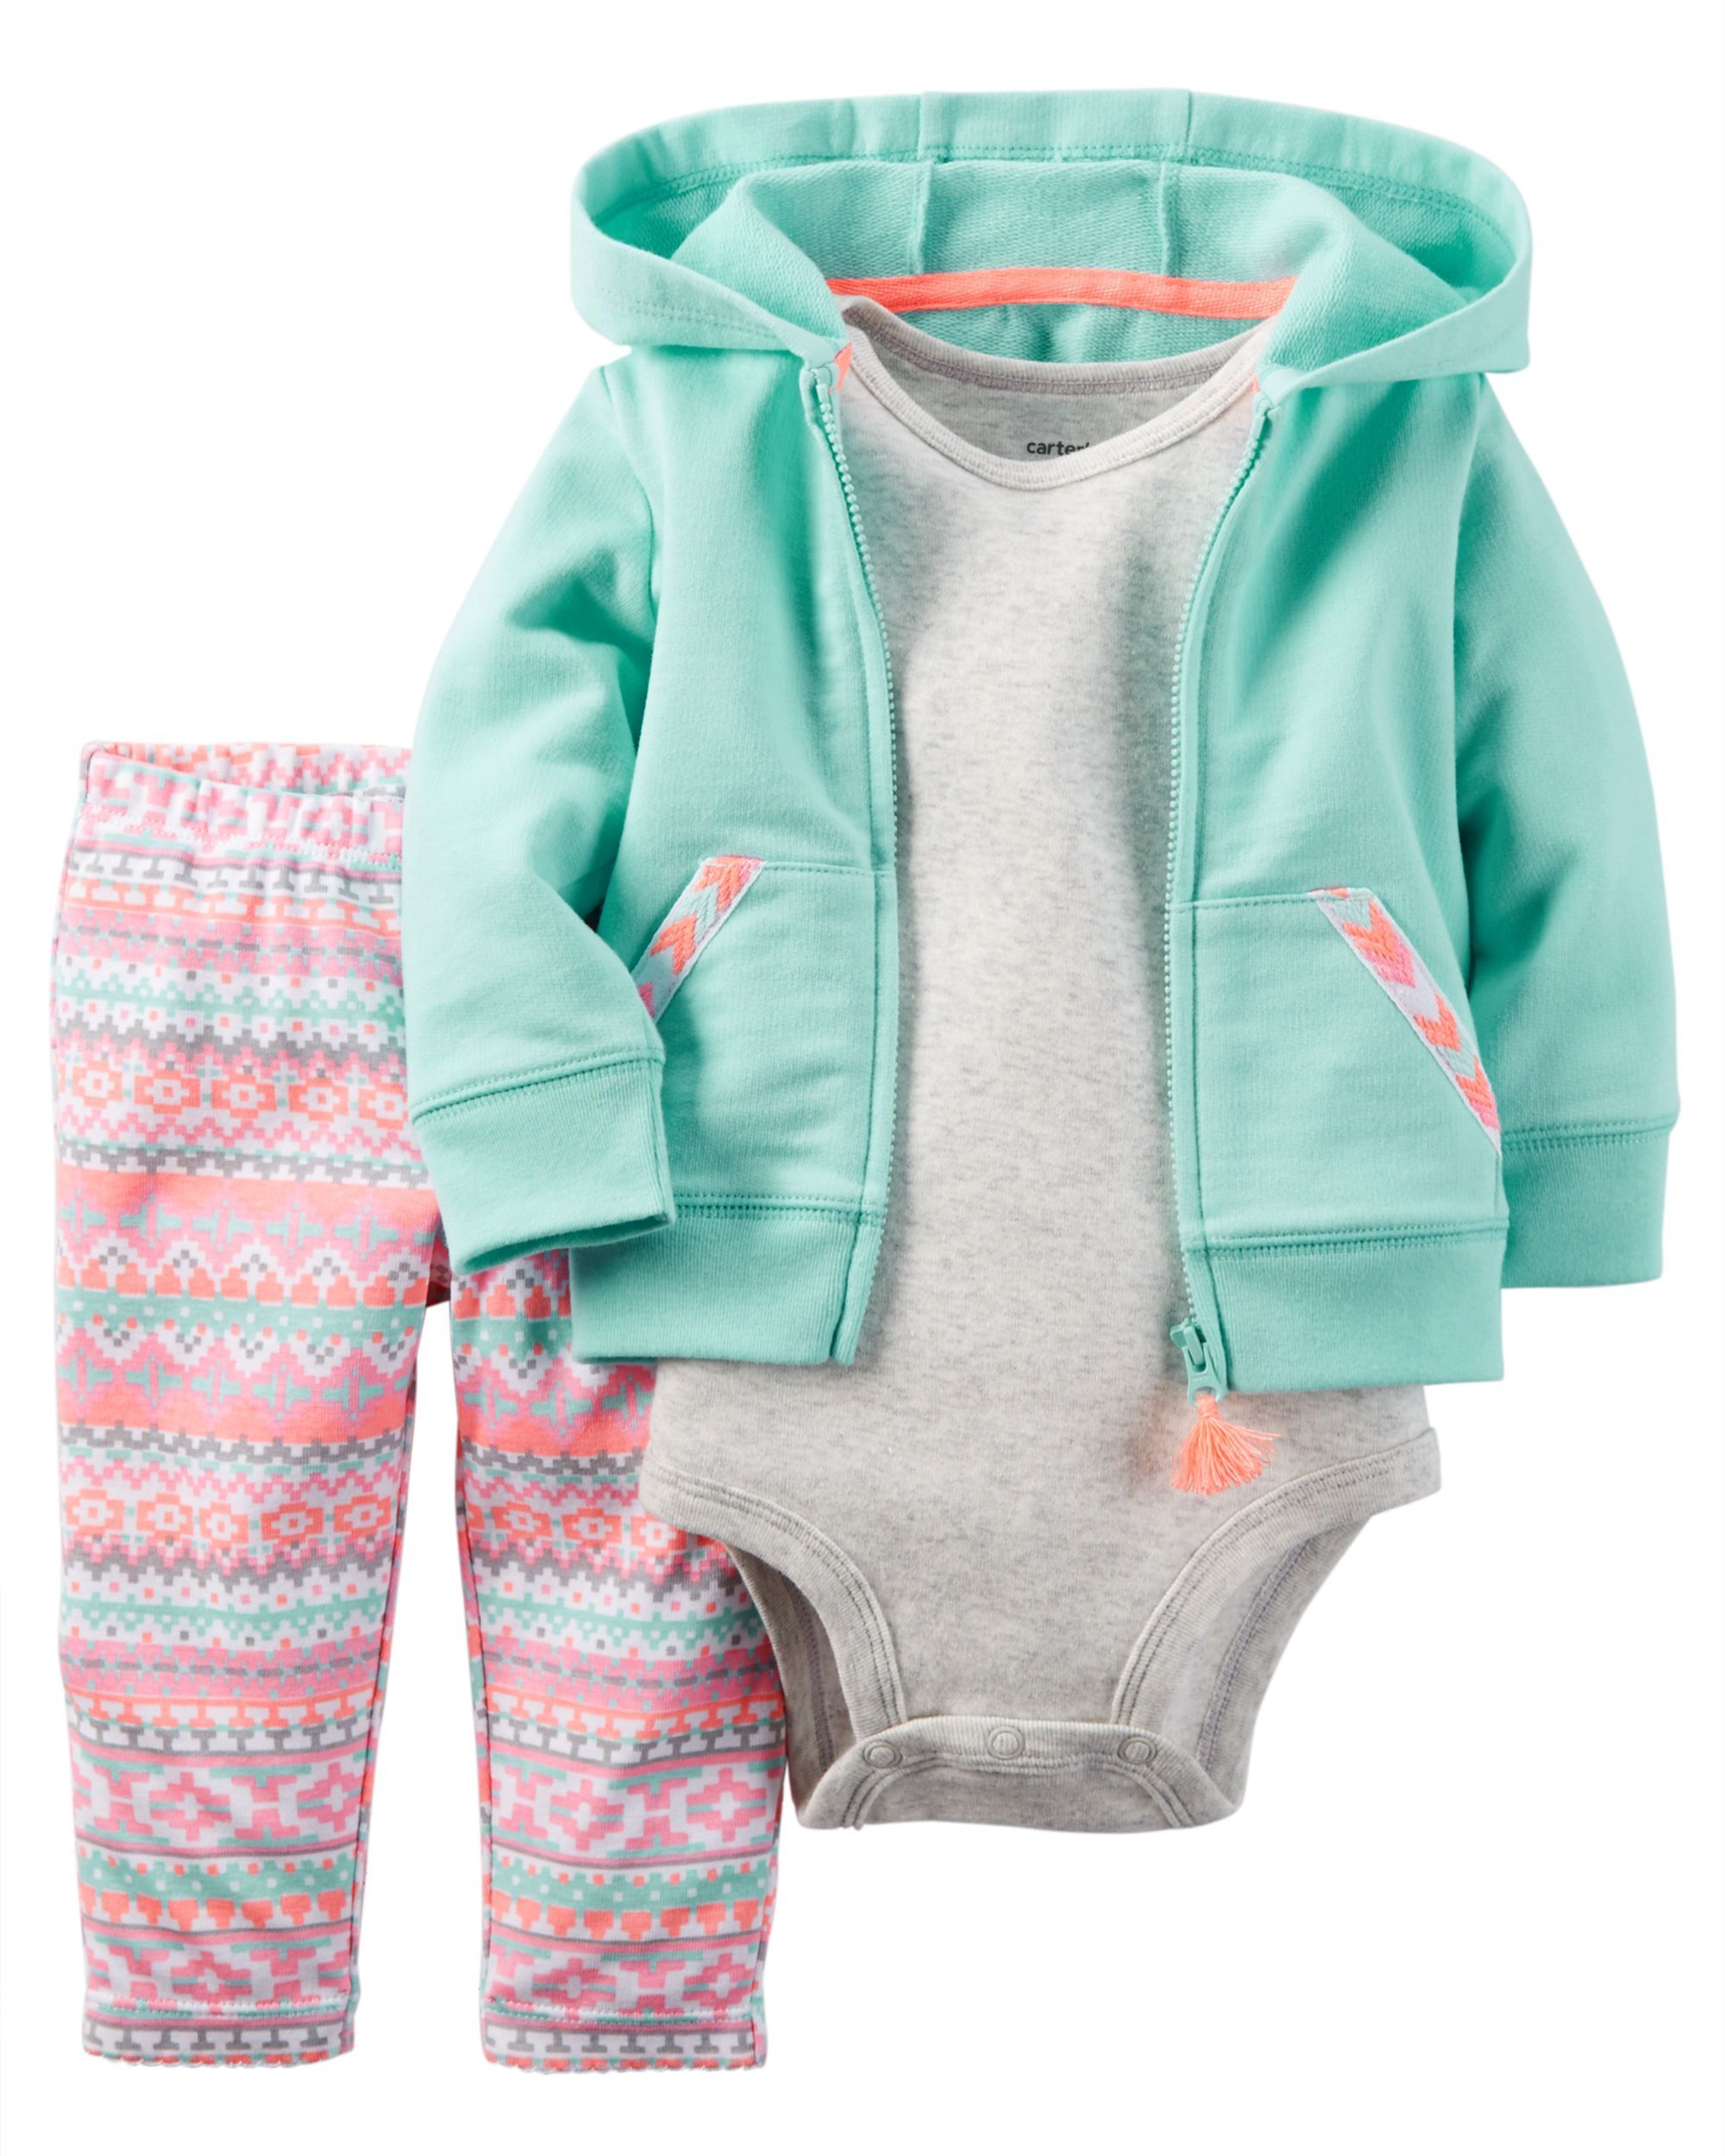 101 Best Baby Clothes & Outfits